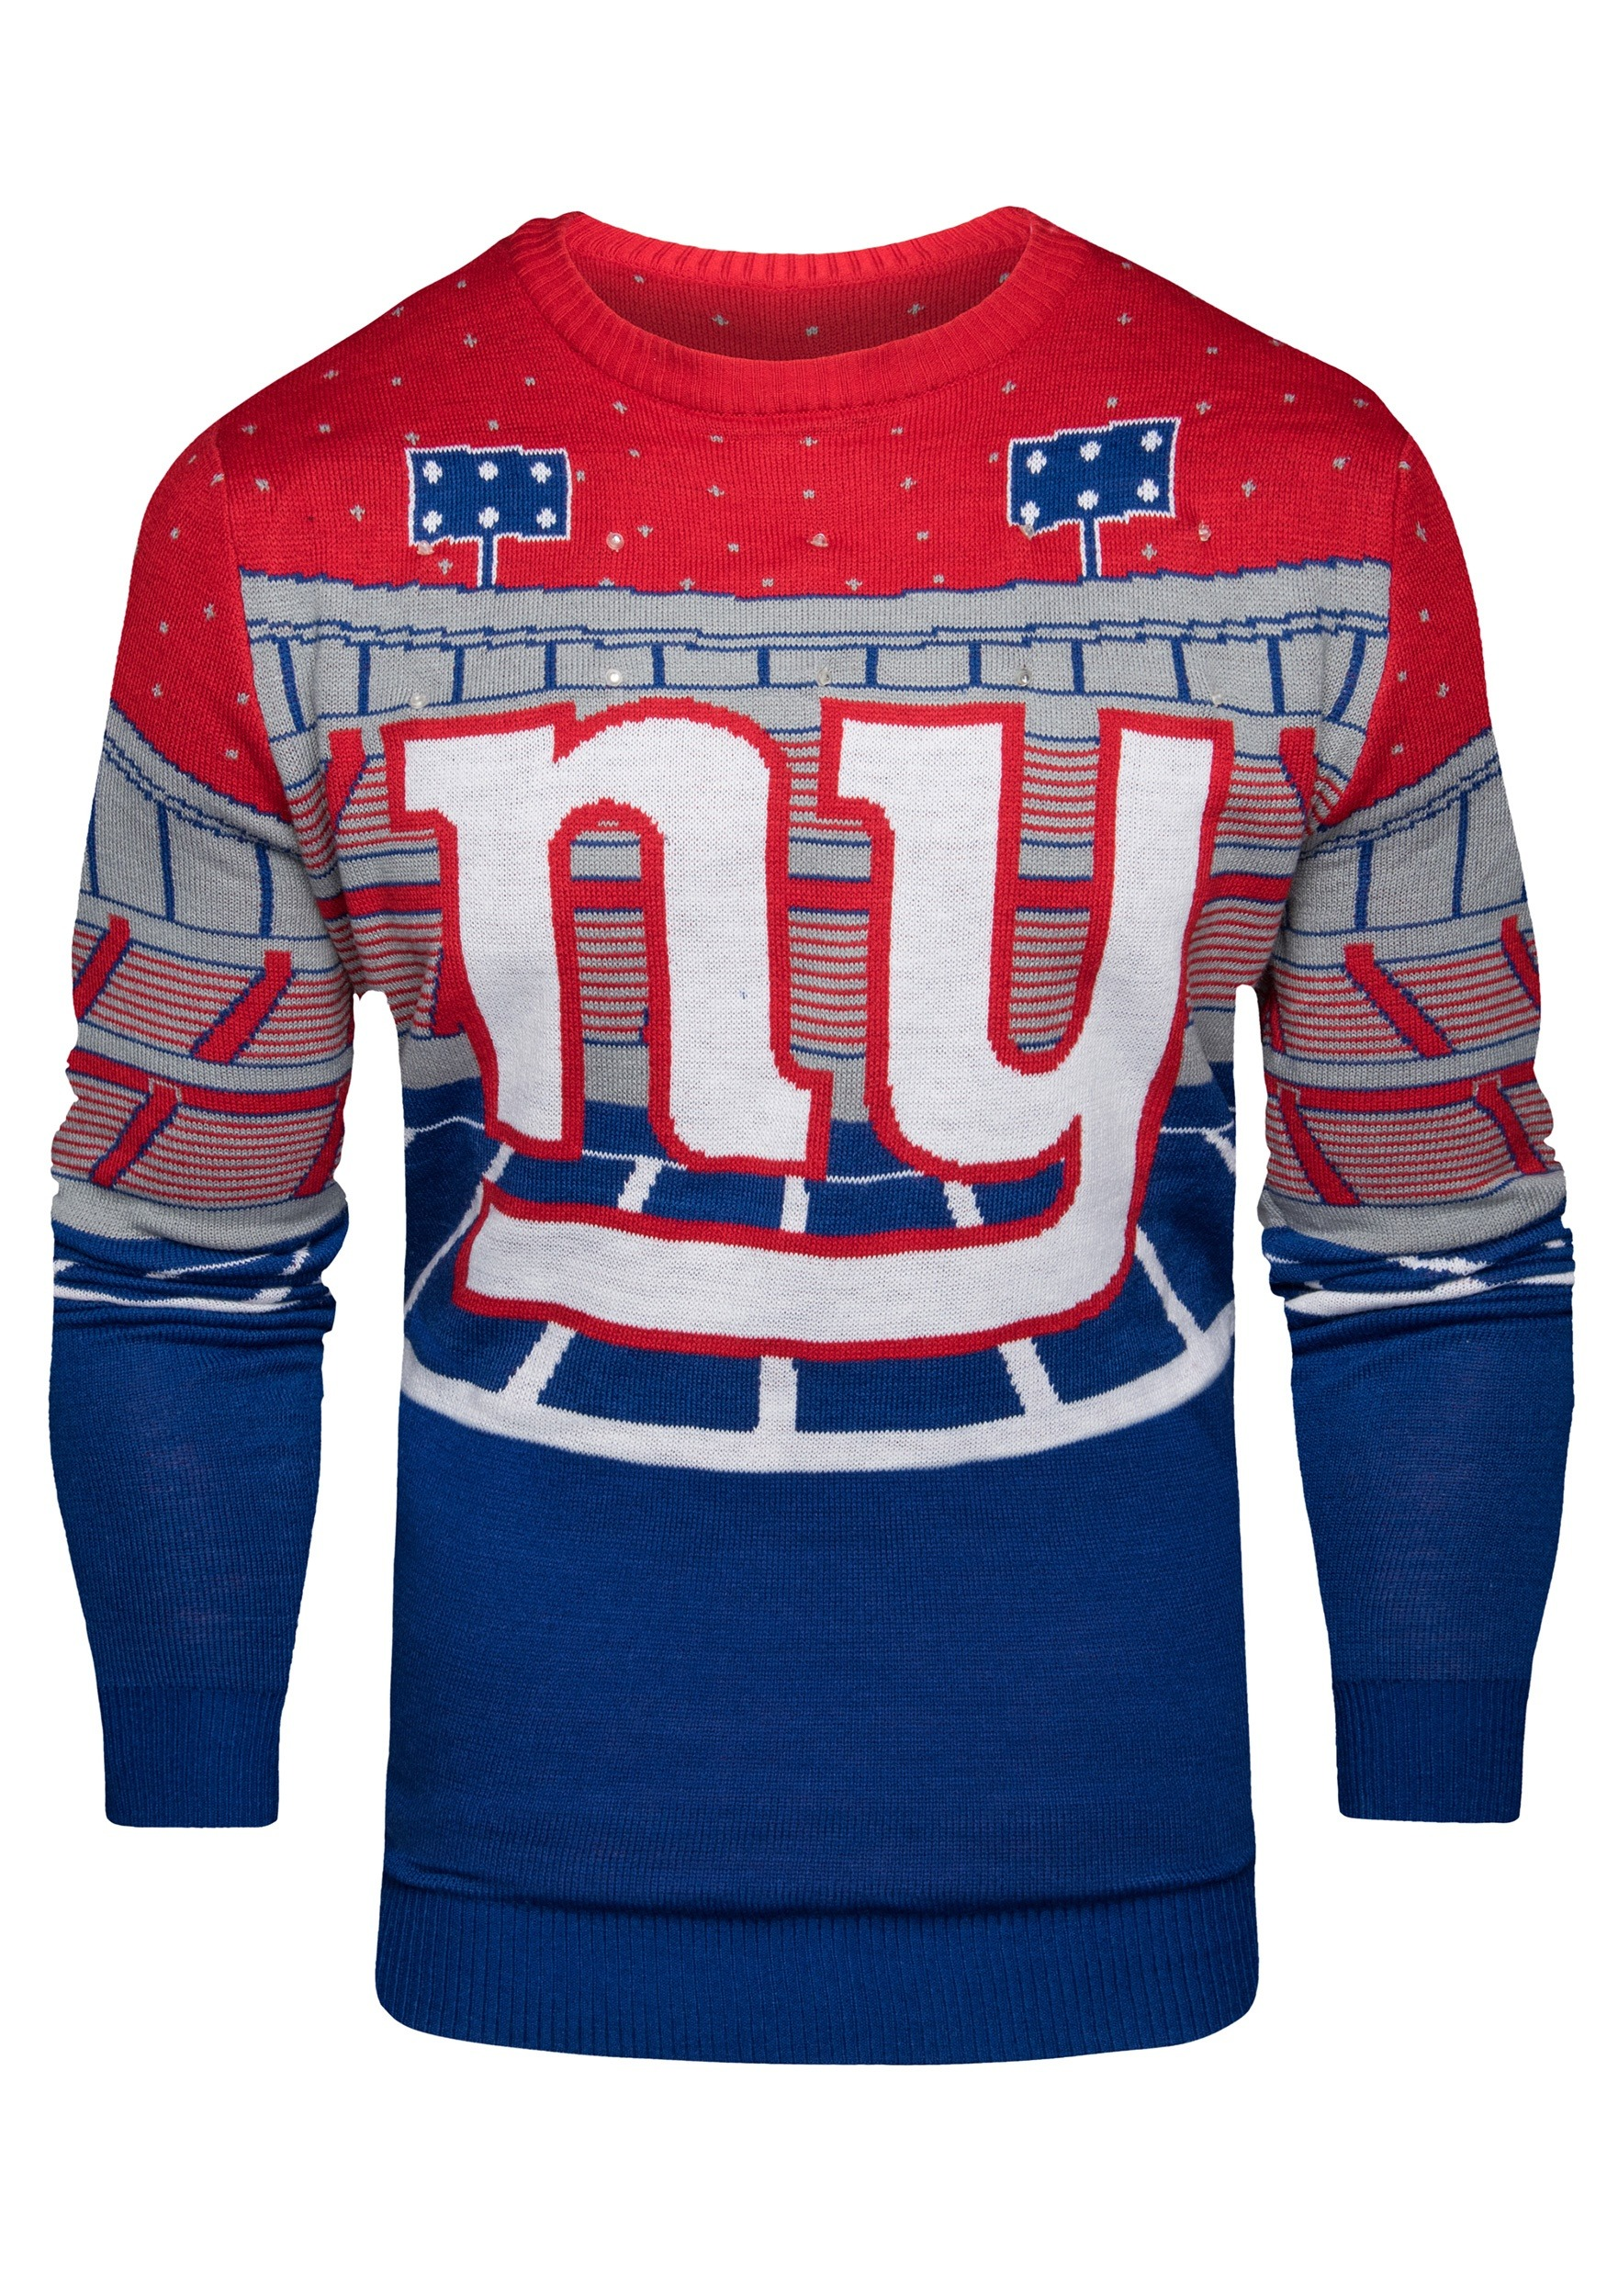 56861d4885c NFL New York Giants Light Up Bluetooth Ugly Christmas Sweater